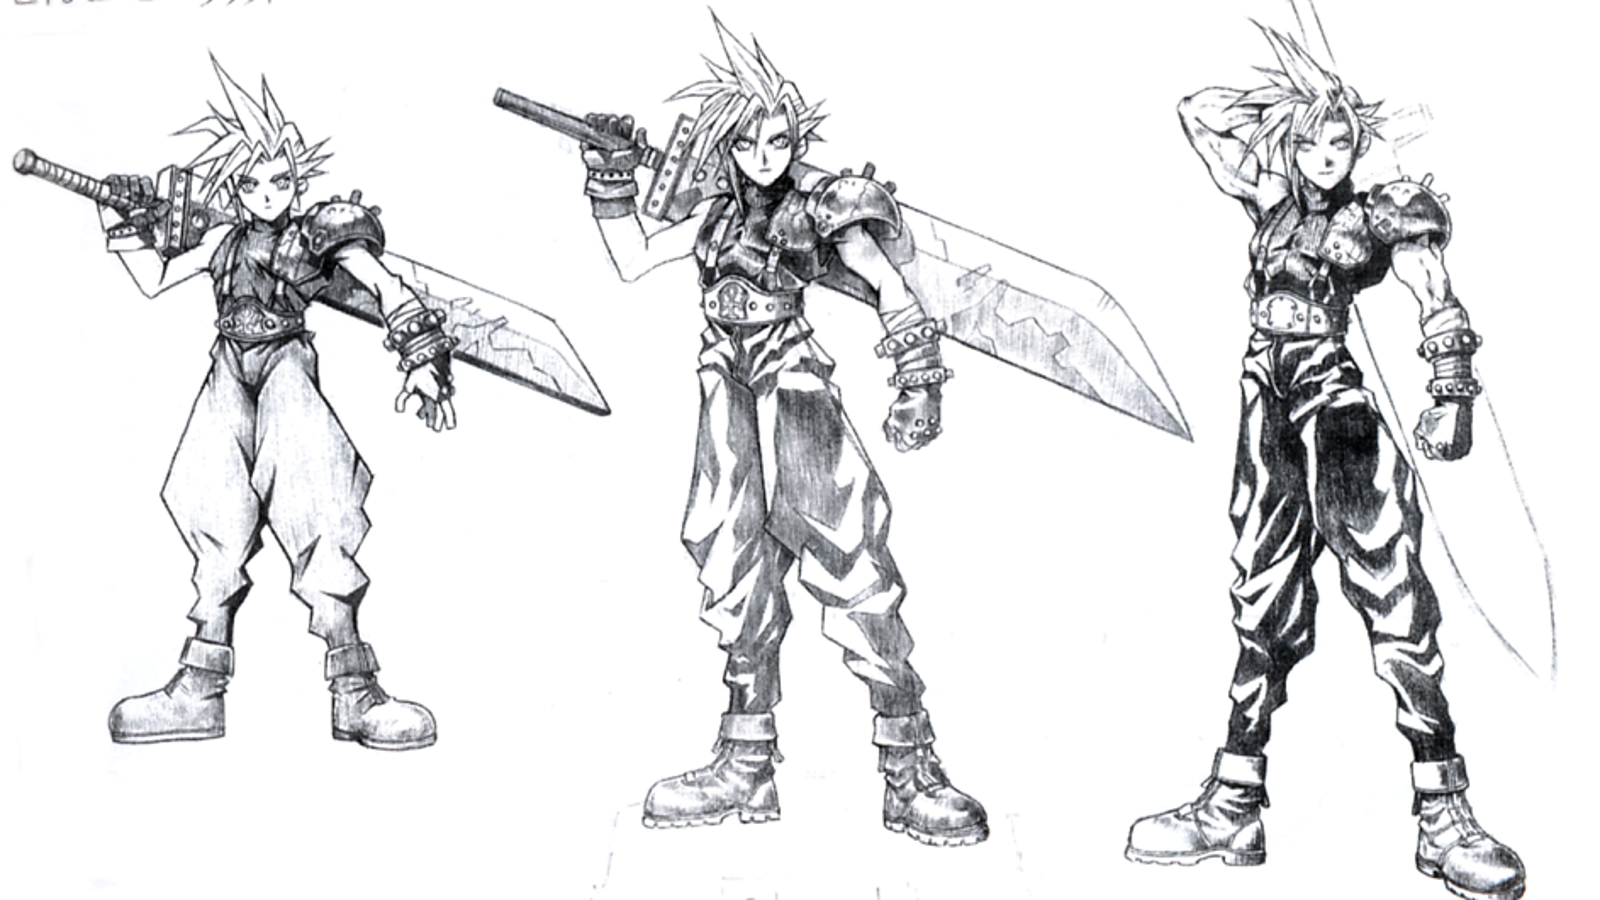 The Iconic Final Fantasy Art Of